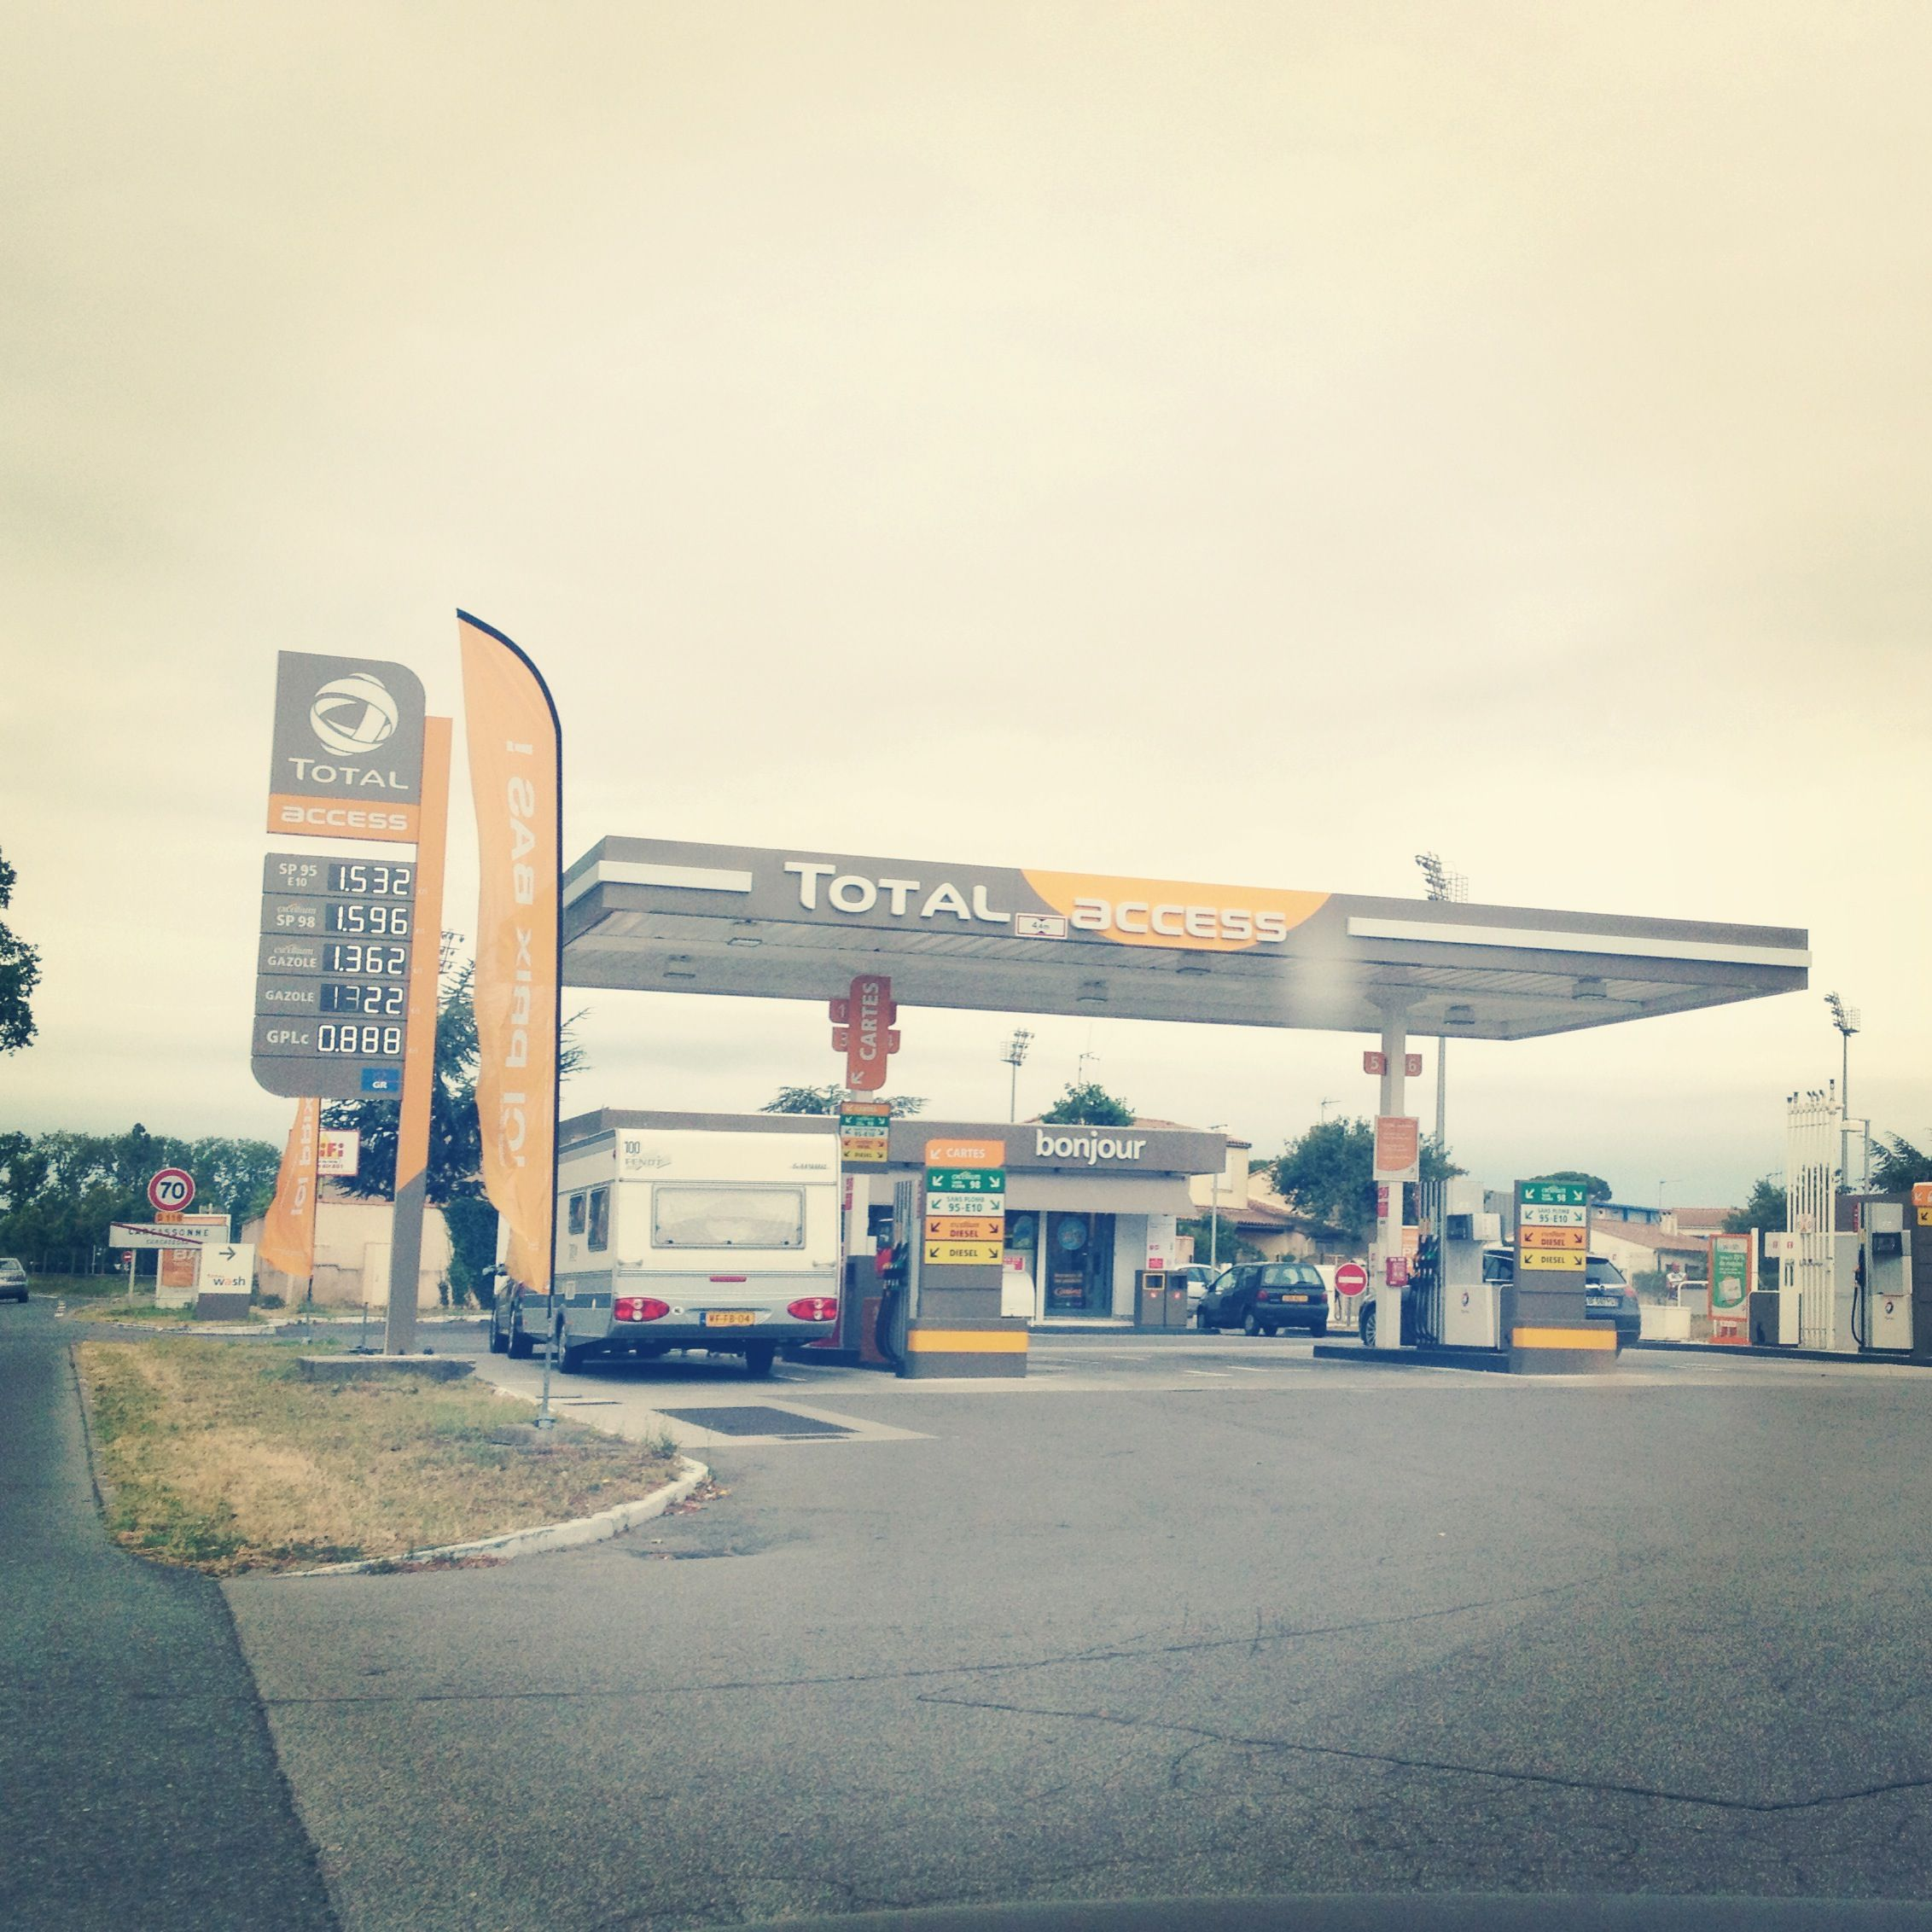 Total Access Petrol Station Carcasonne Most Creative Com Petrol Station Service Station Petrol